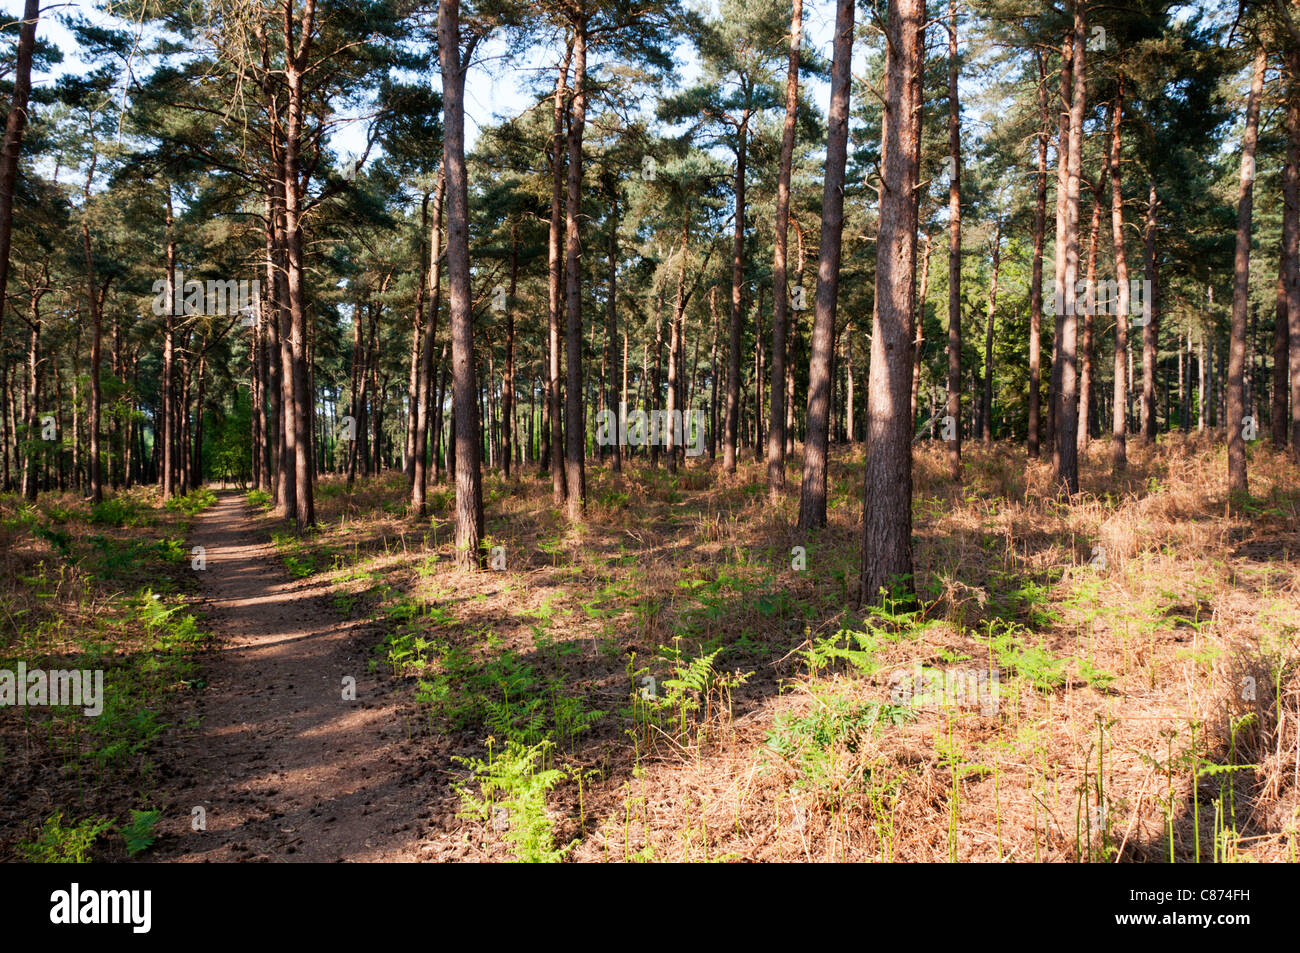 Coniferous woodland at The Sincks in Thetford Forest Park. - Stock Image